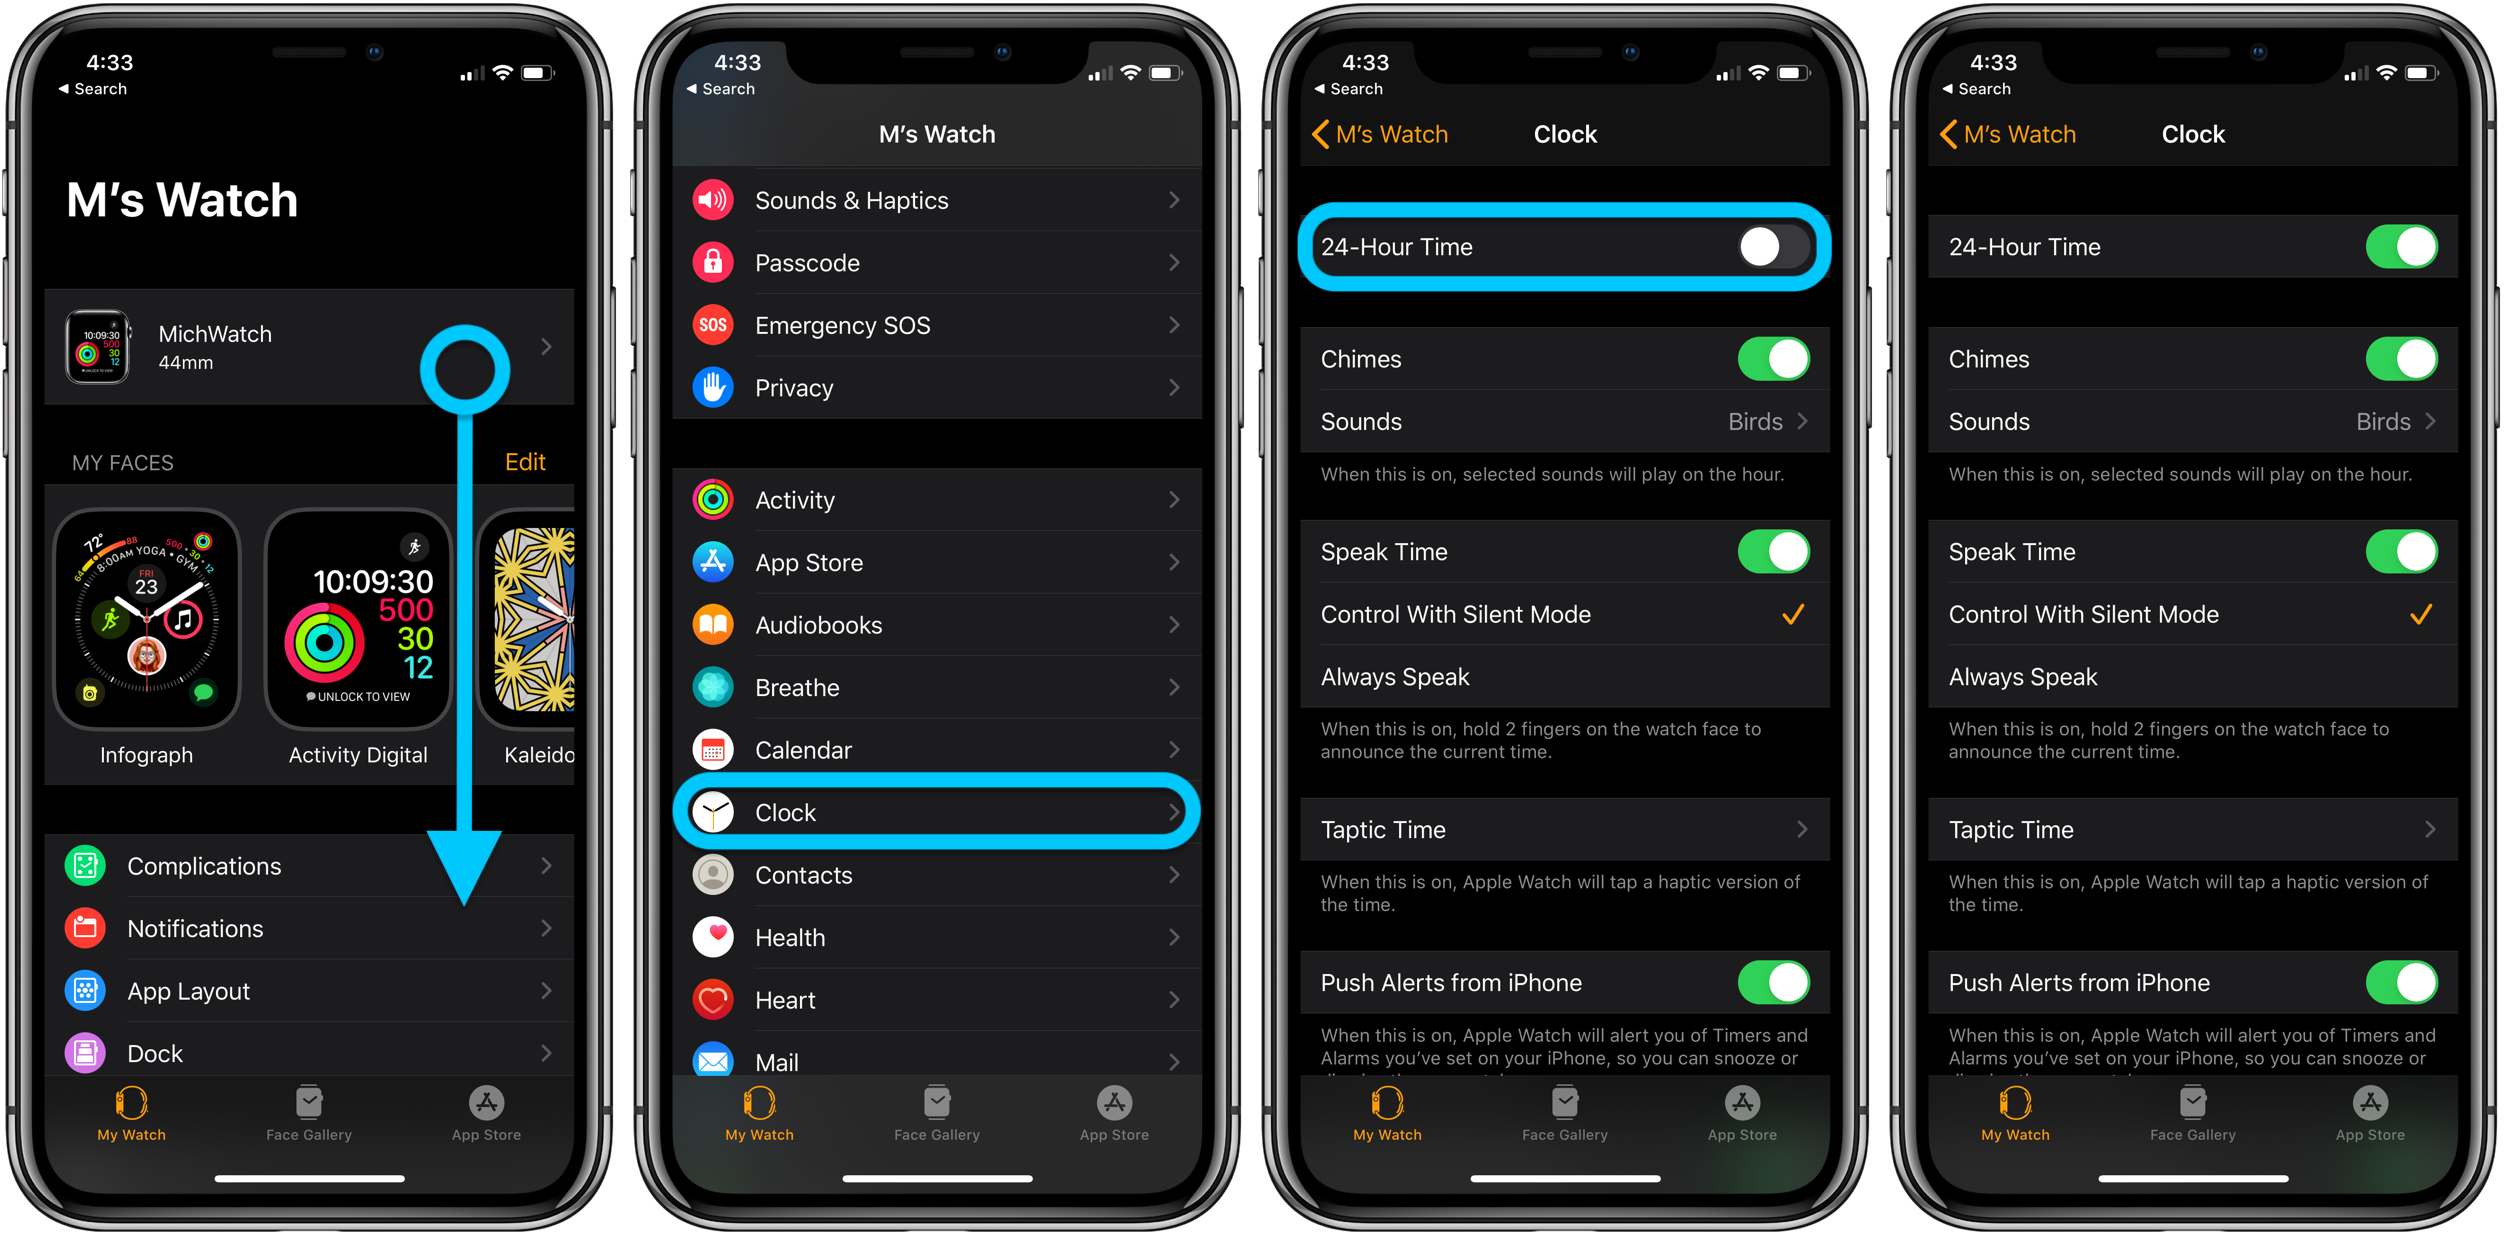 How to set Apple Watch military time 24-hour time walkthrough 1